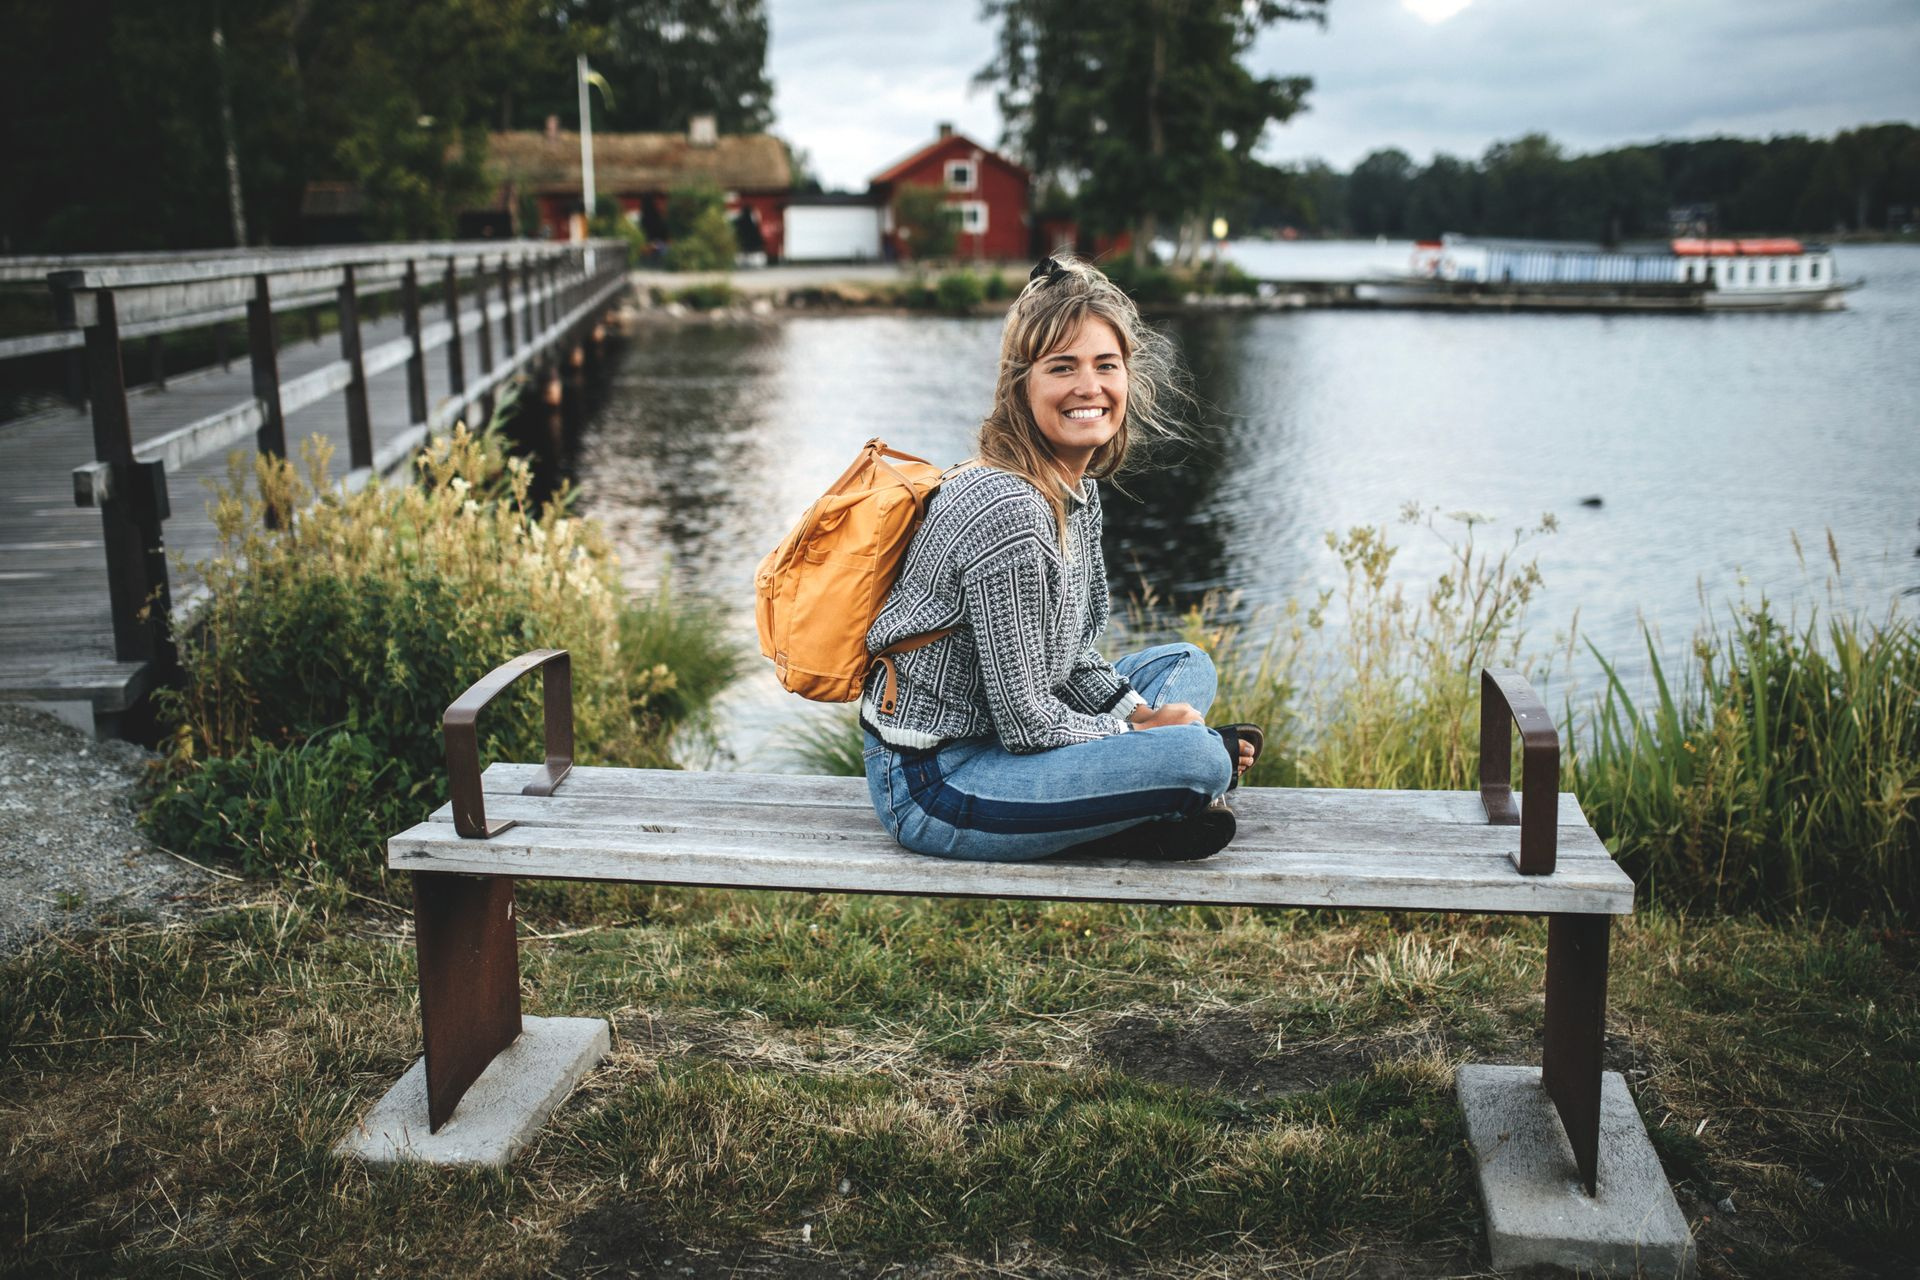 Woman sits on a bench in a park.